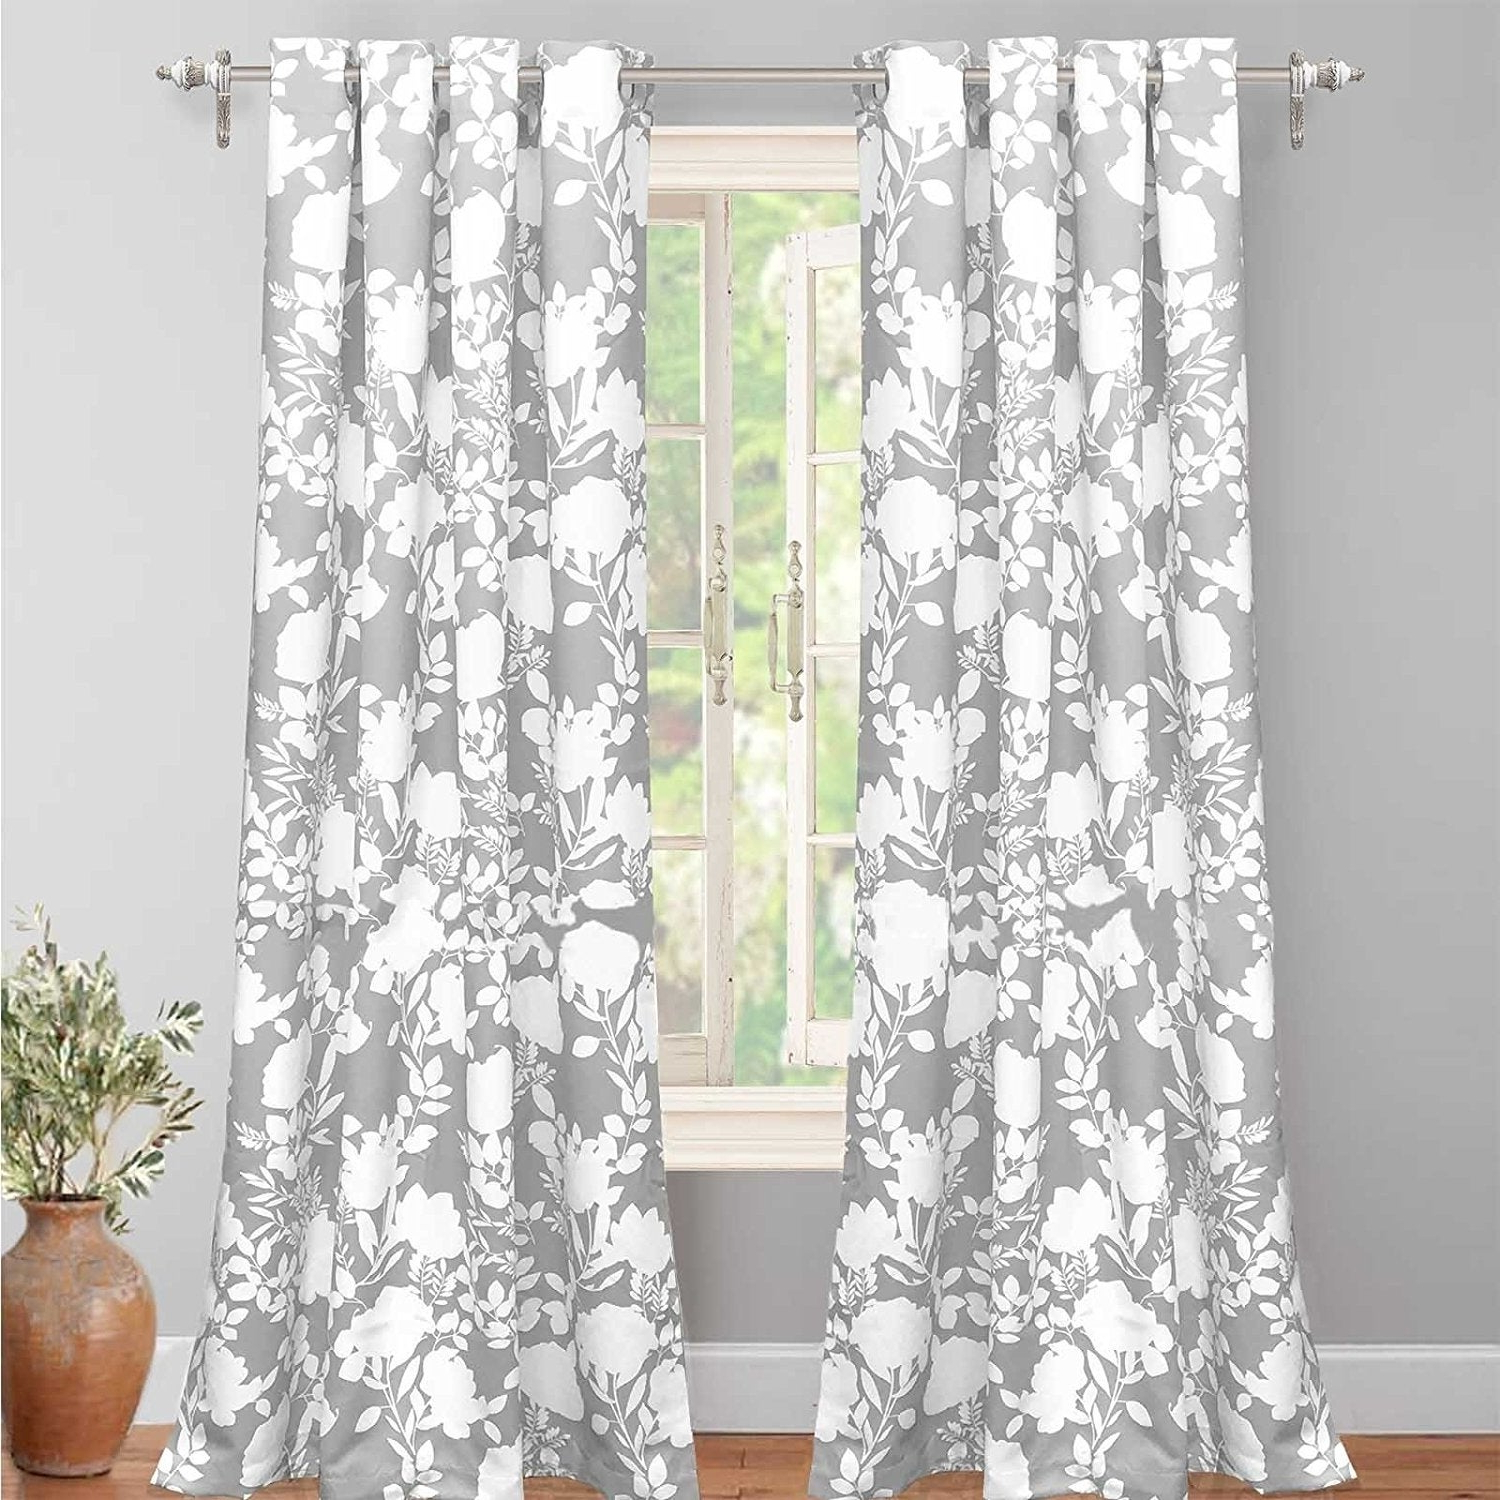 Gray Barn Dogwood Floral Curtain Panel Pairs In Current Porch & Den Nolana Floral Room Darkening Grommet Window Curtain Panel Pair (View 9 of 20)